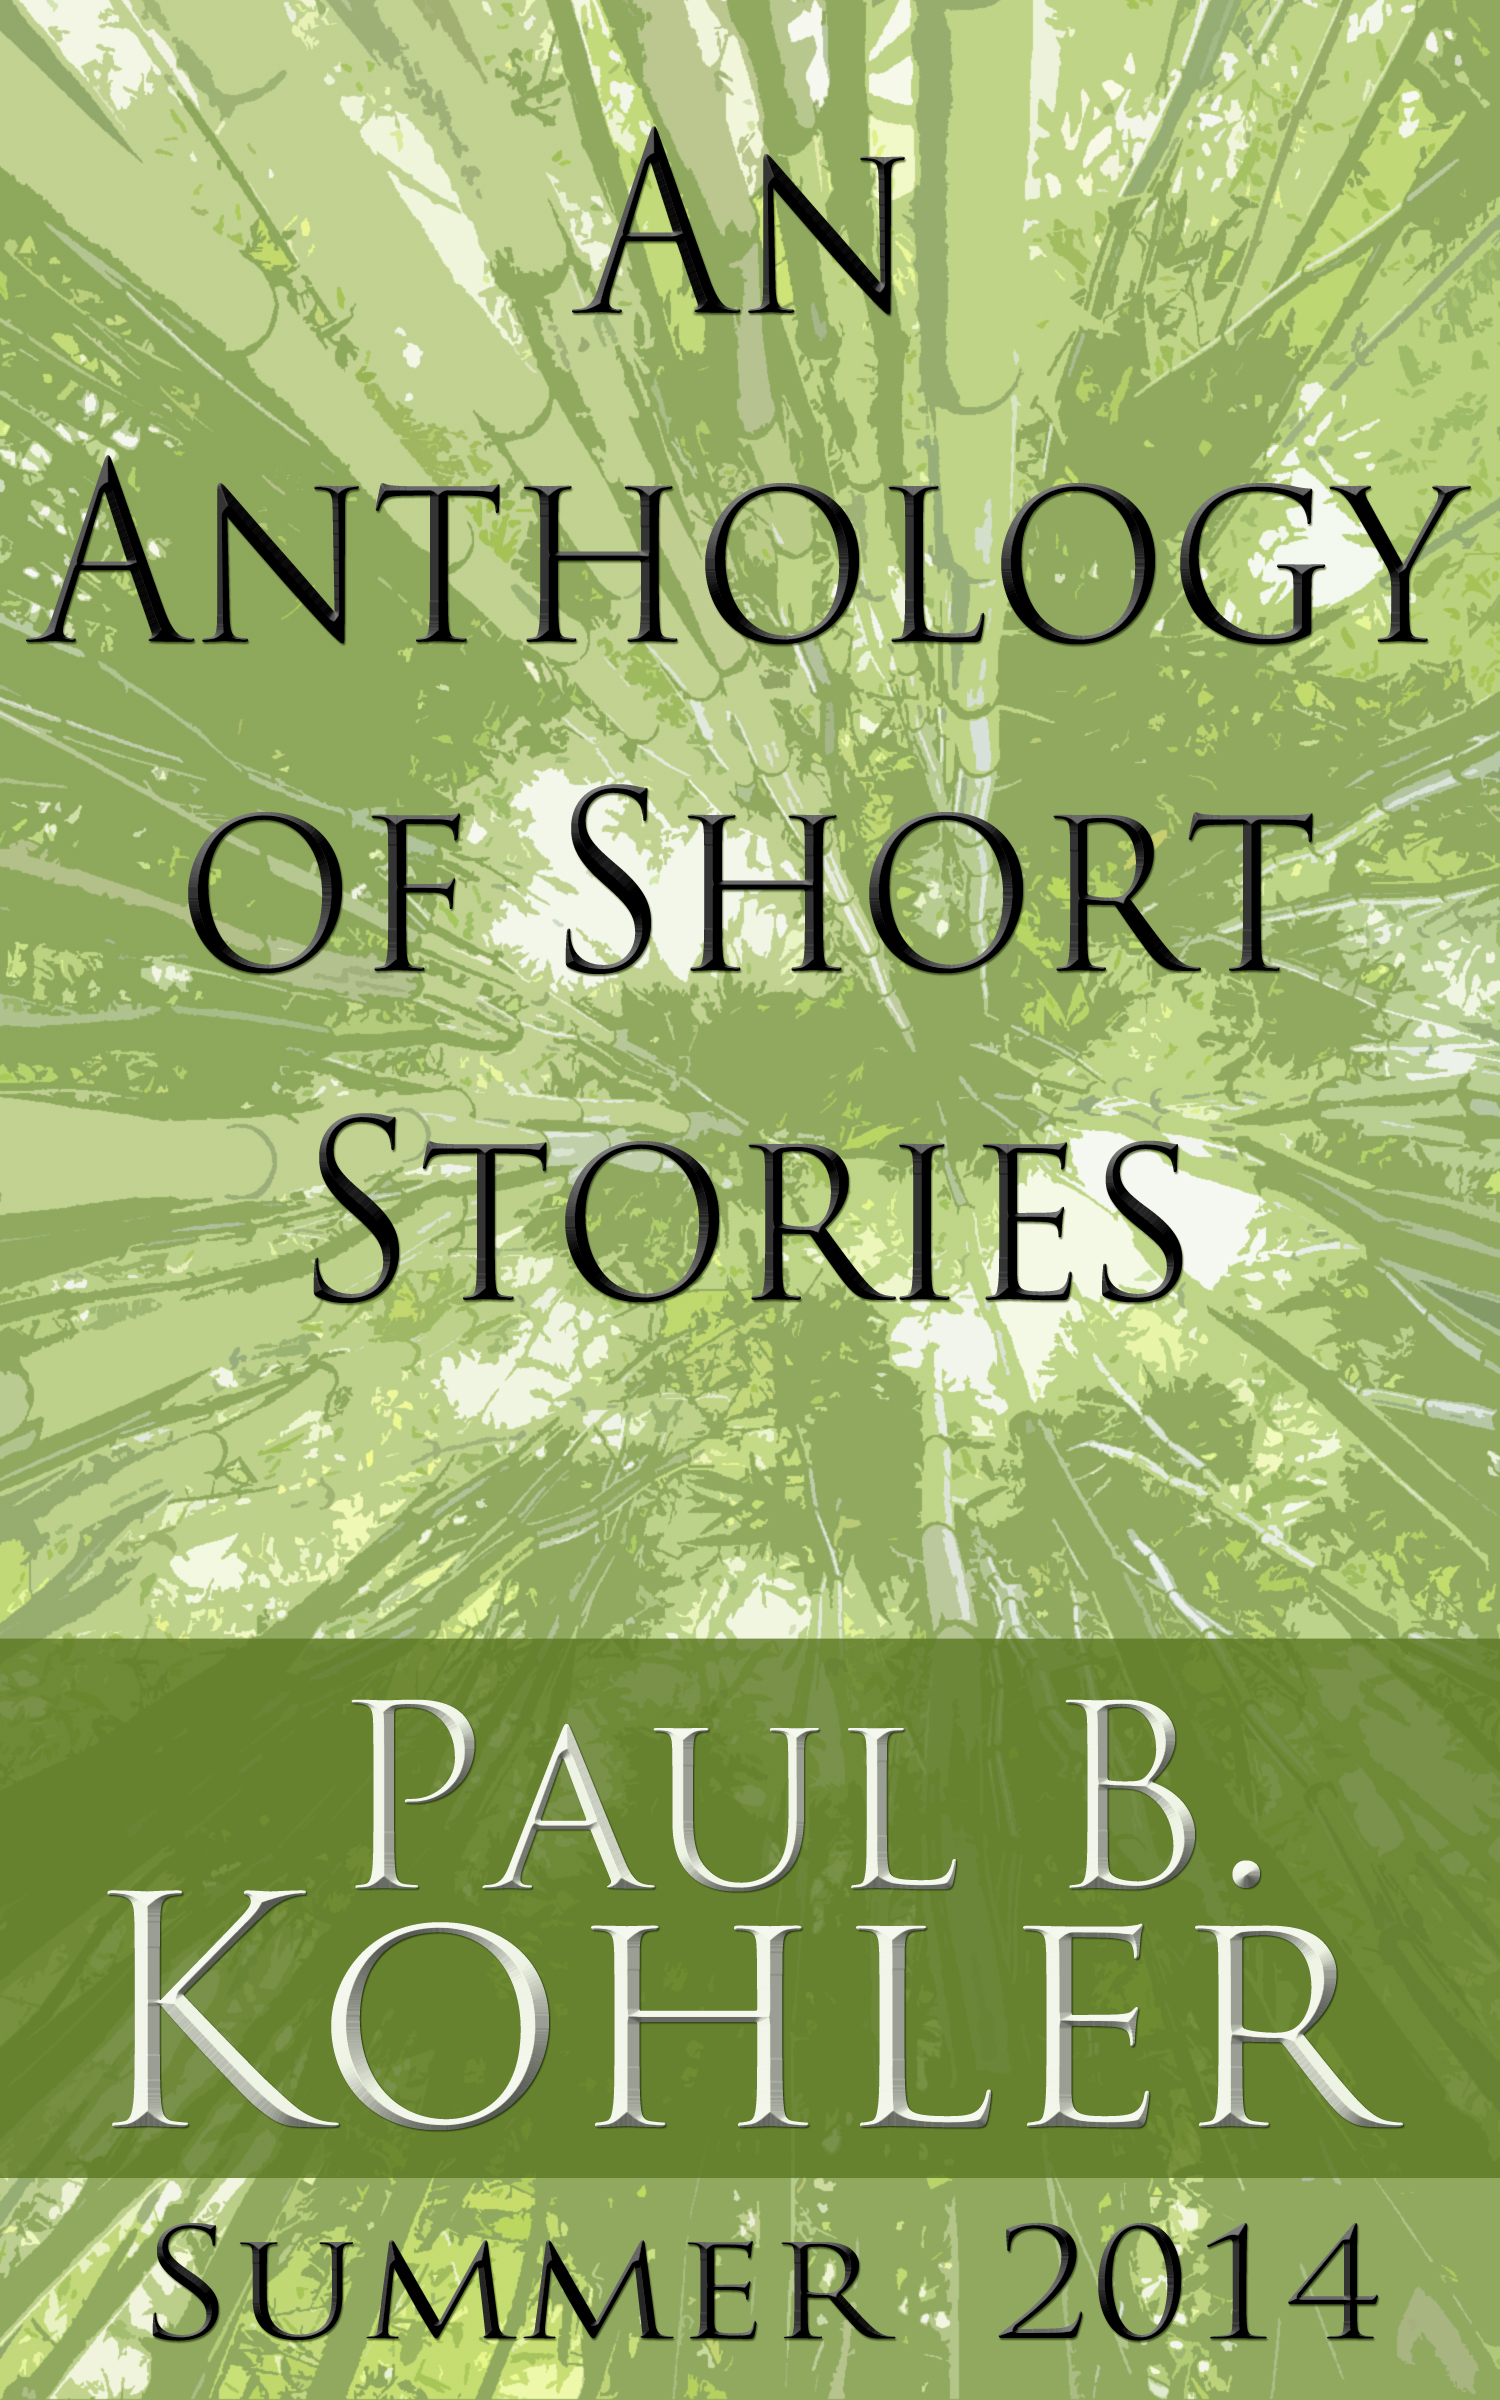 short story anthology, sci-fi, fantasy, suicide, tragic